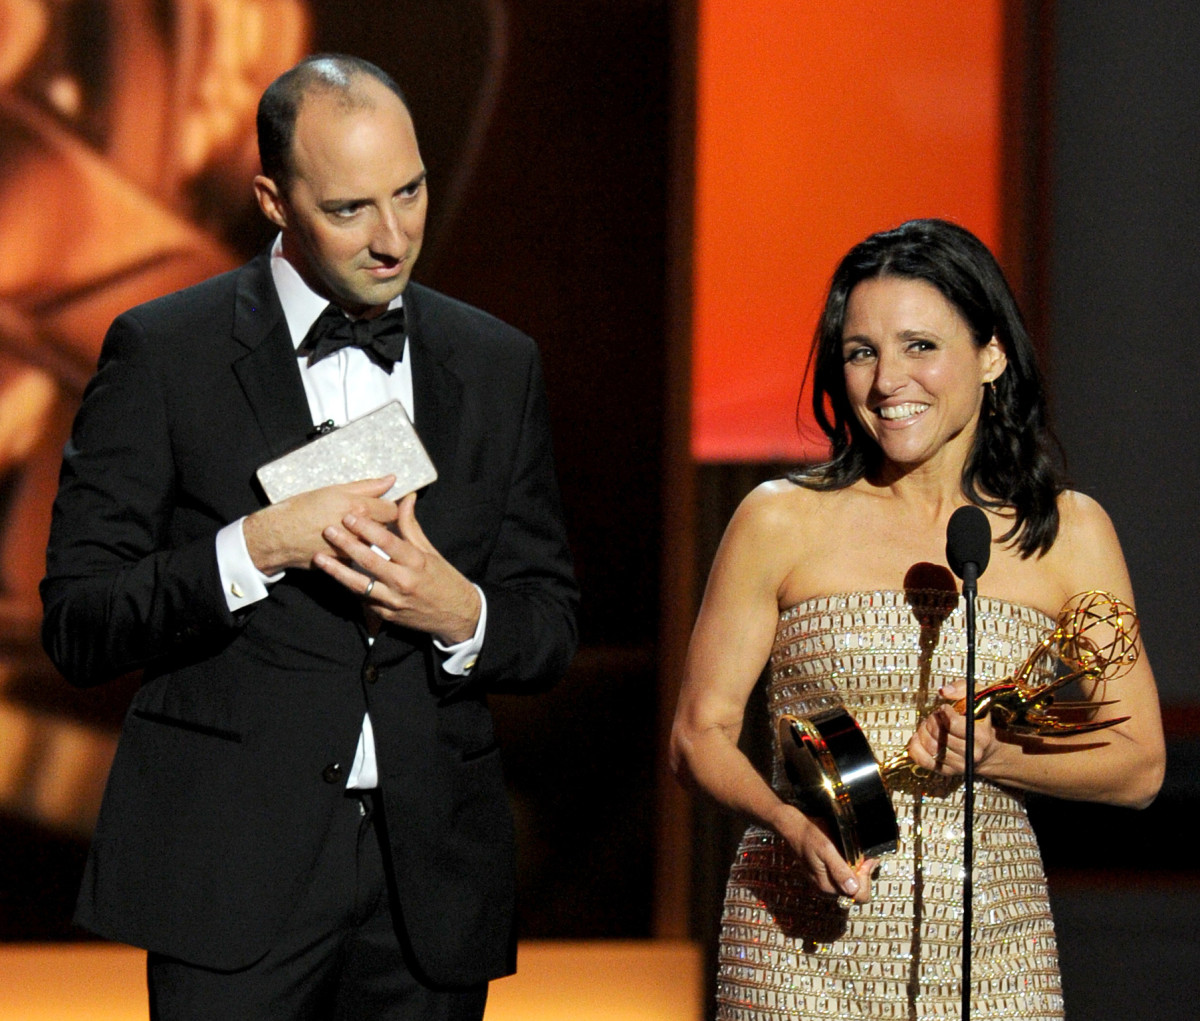 Tony Hale channels his 'Veep' character by holding Julia Louis-Dreyfus' Edie Parker clutch on stage at the Emmy's in 2013. Photo: Kevin Winter/Getty Images